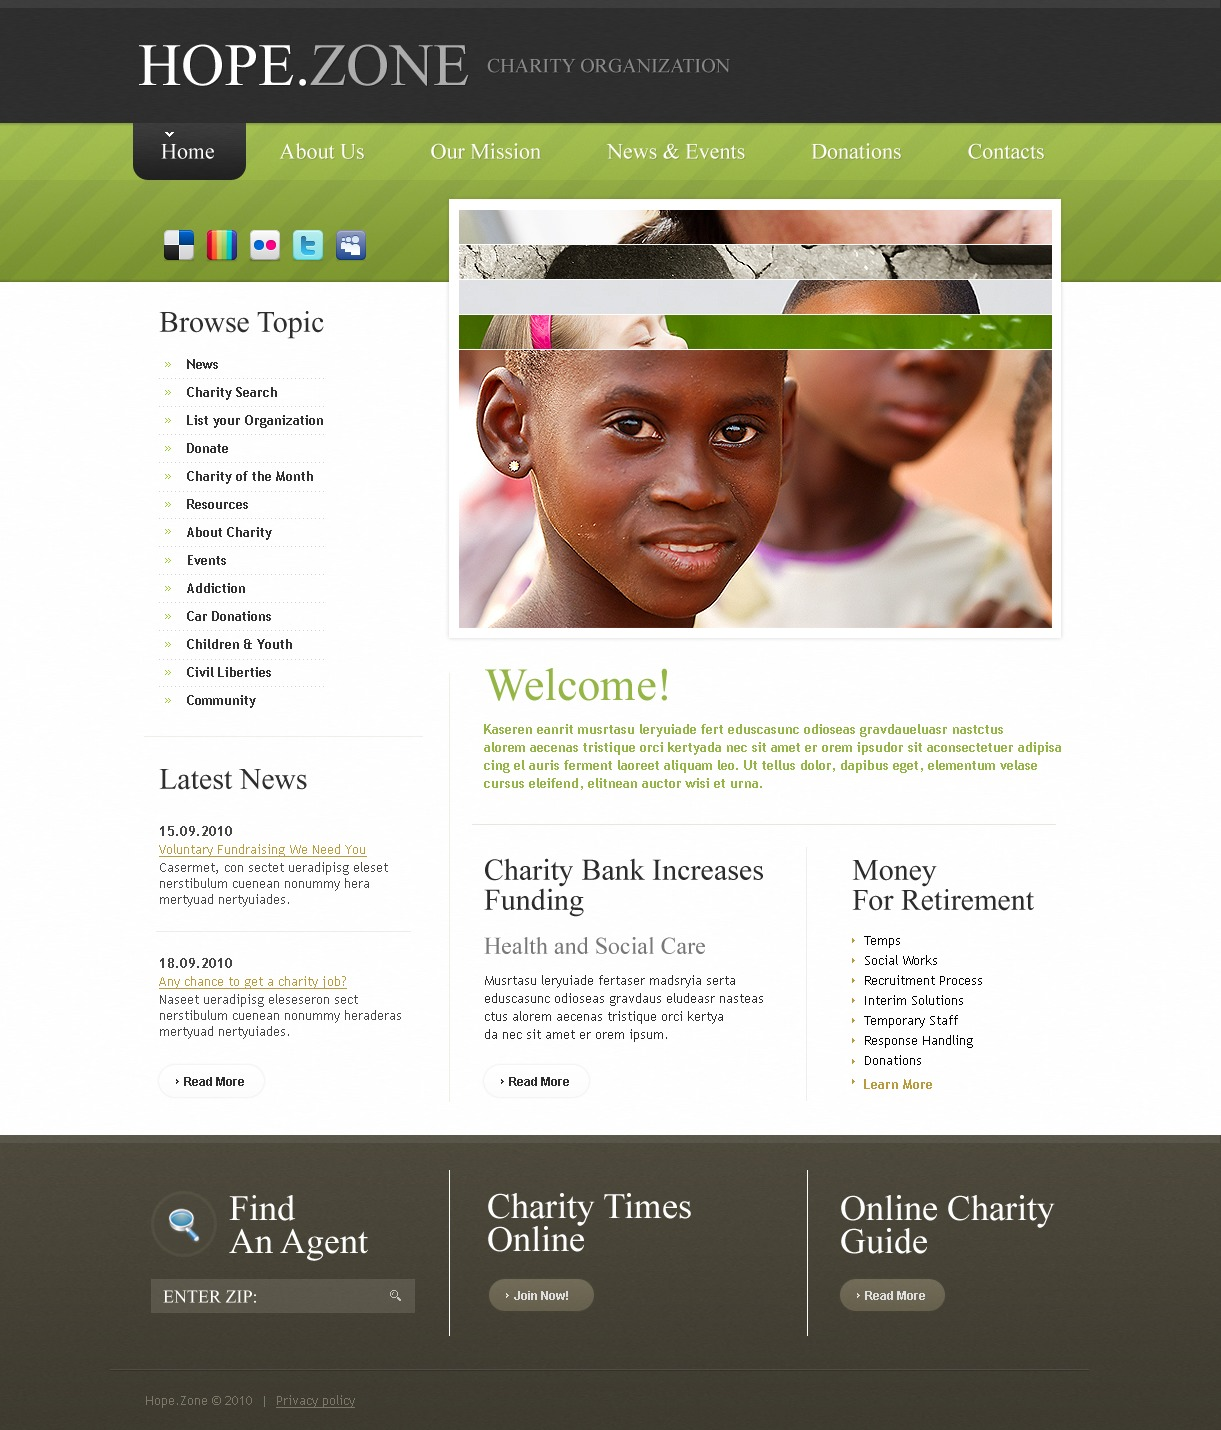 The Hope Zone PSD Design 54407, one of the best PSD templates of its kind (charity, wide, jquery), also known as hope zone PSD template, children PSD template, charity PSD template, organization PSD template, children PSD template, indigent PSD template, donation PSD template, adoption PSD template, relief PSD template, fund PSD template, pecuniary PSD template, aid PSD template, non-profit PSD template, mission PSD template, team PSD template, work PSD template, department PSD template, work PSD template, project PSD template, children PSD template, events PSD template, partner and related with hope zone, children, charity, organization, children, indigent, donation, adoption, relief, fund, pecuniary, aid, non-profit, mission, team, work, department, work, project, children, events, partner, etc.